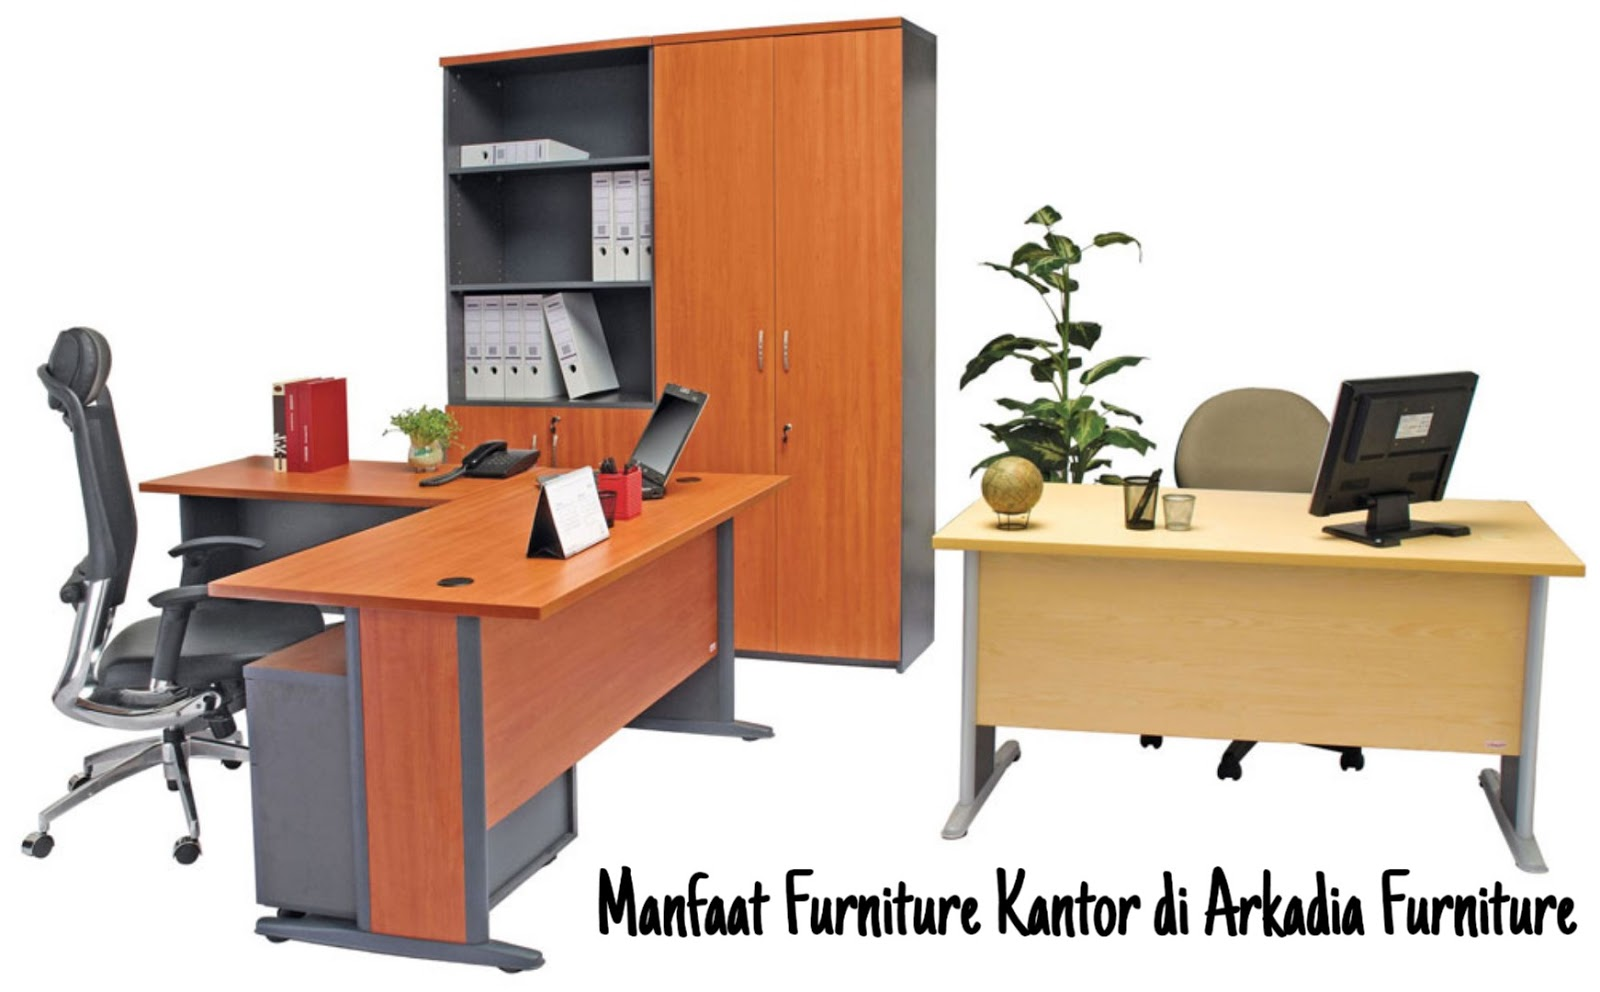 Manfaat Furniture Kantor di Arkadia Furniture